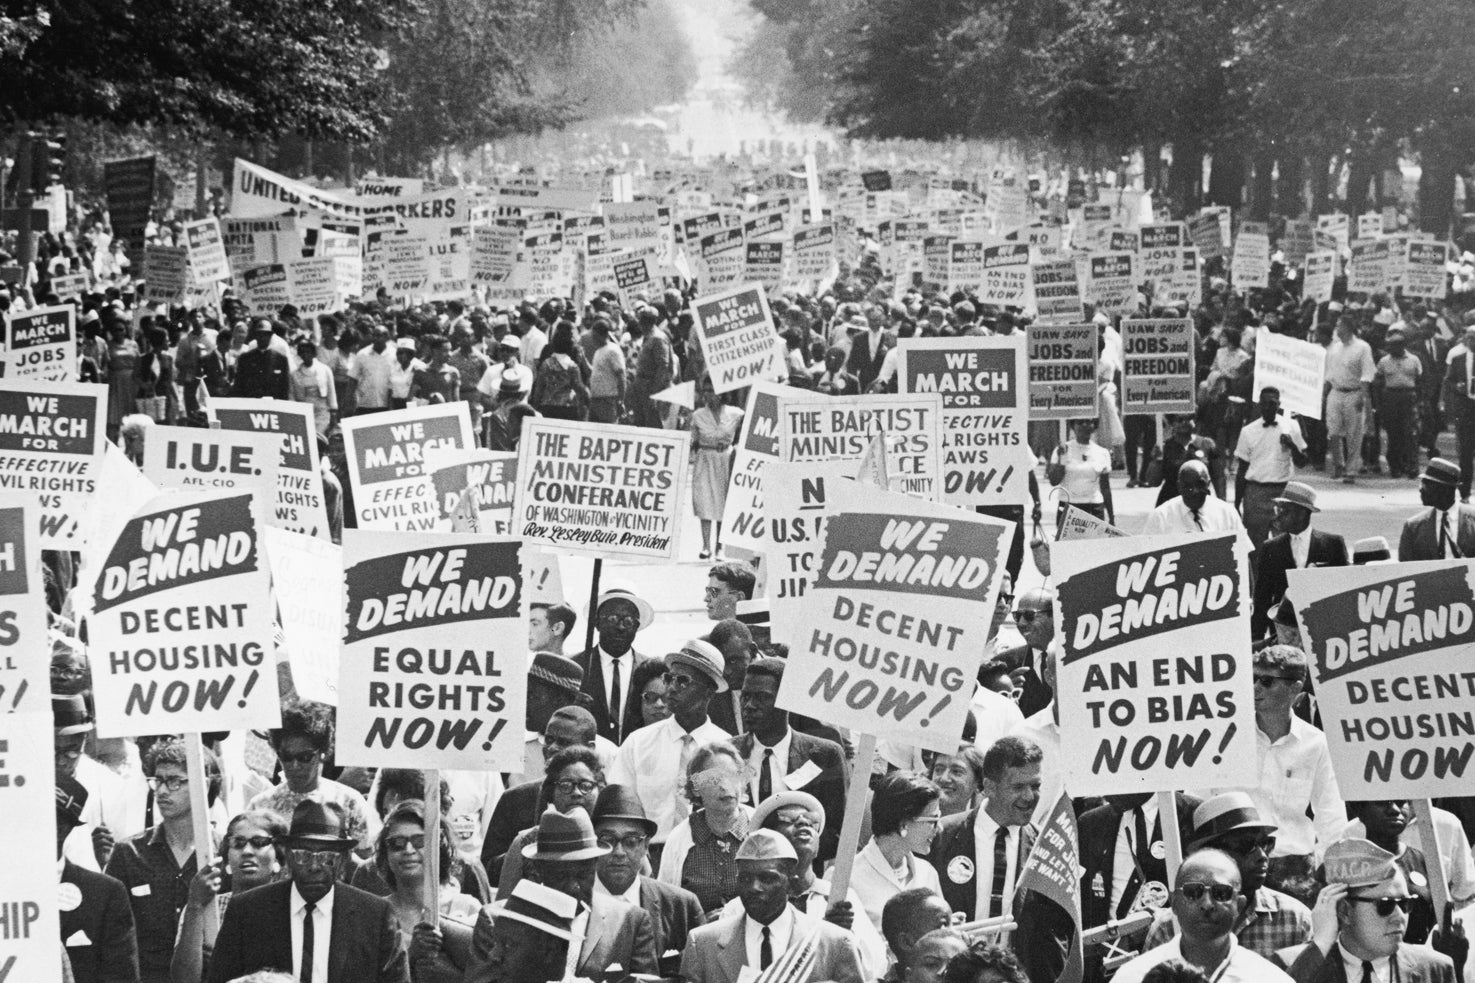 THE MARCH ON WASHINGTON - AUGUST 28, 1963